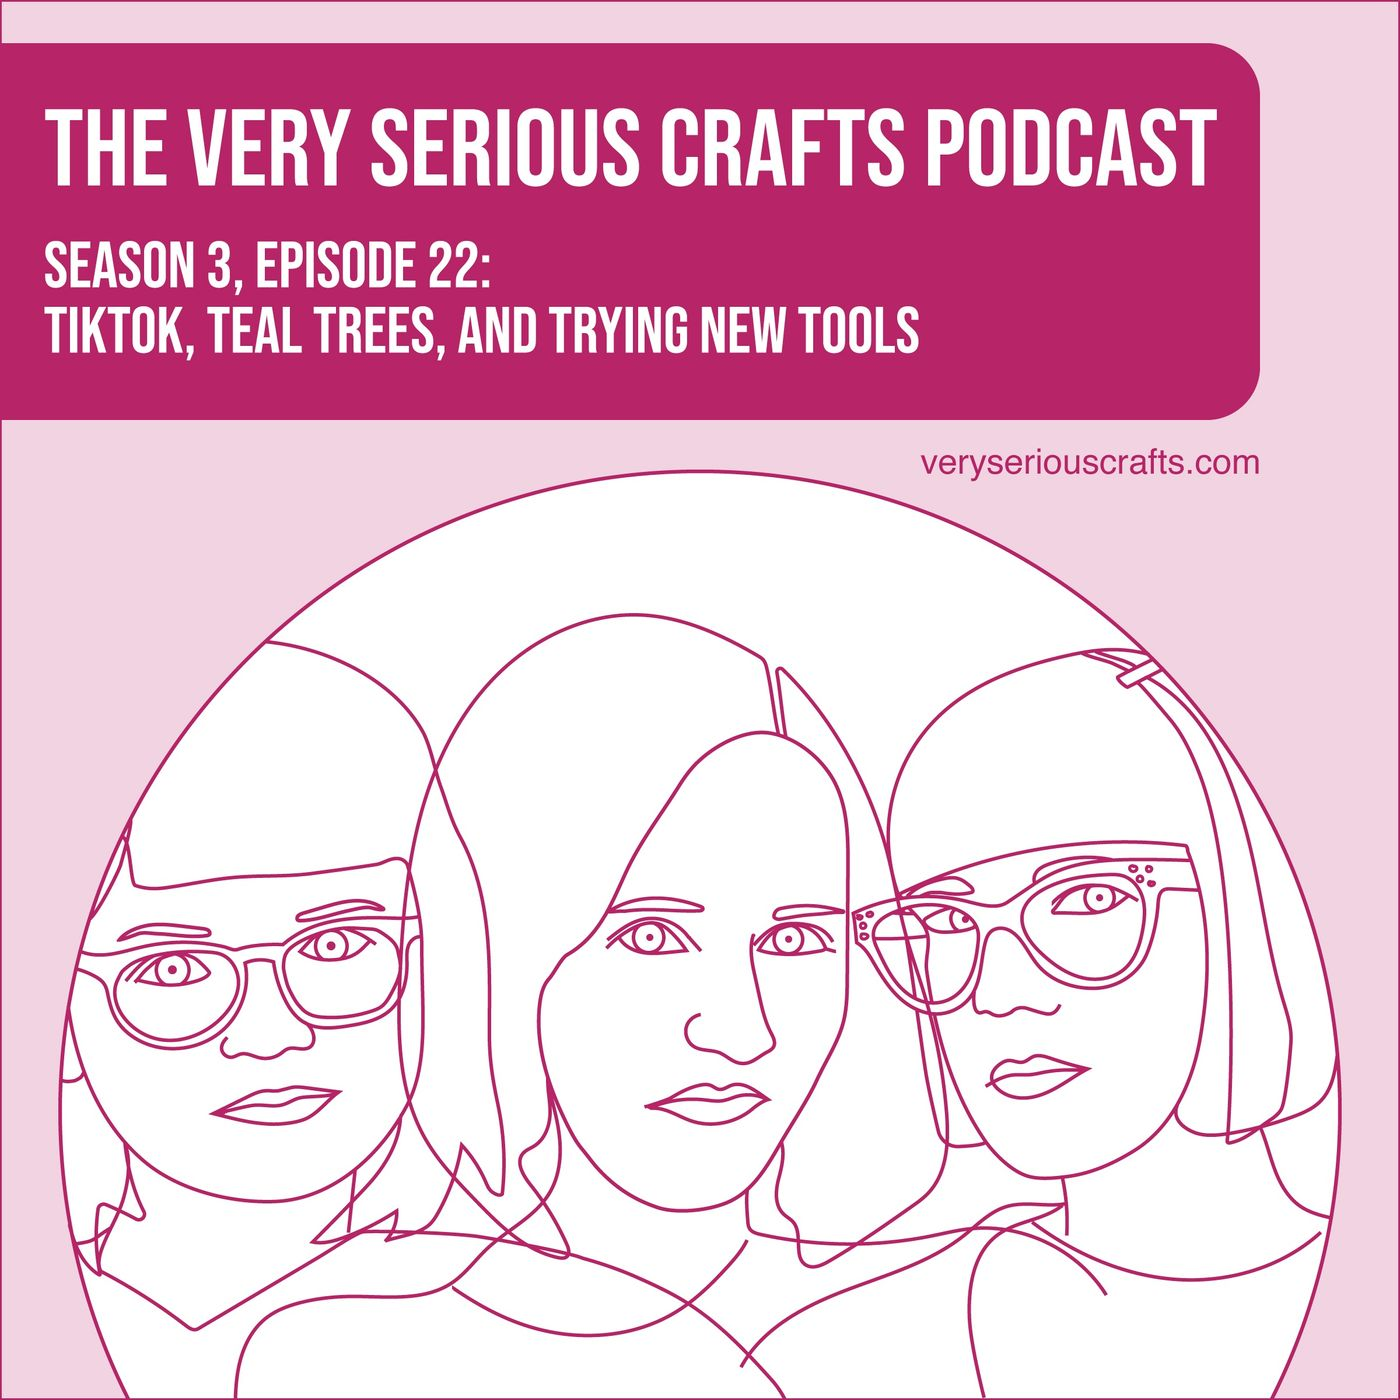 S3E22: TikTok, Teal Trees, and Trying New Tools